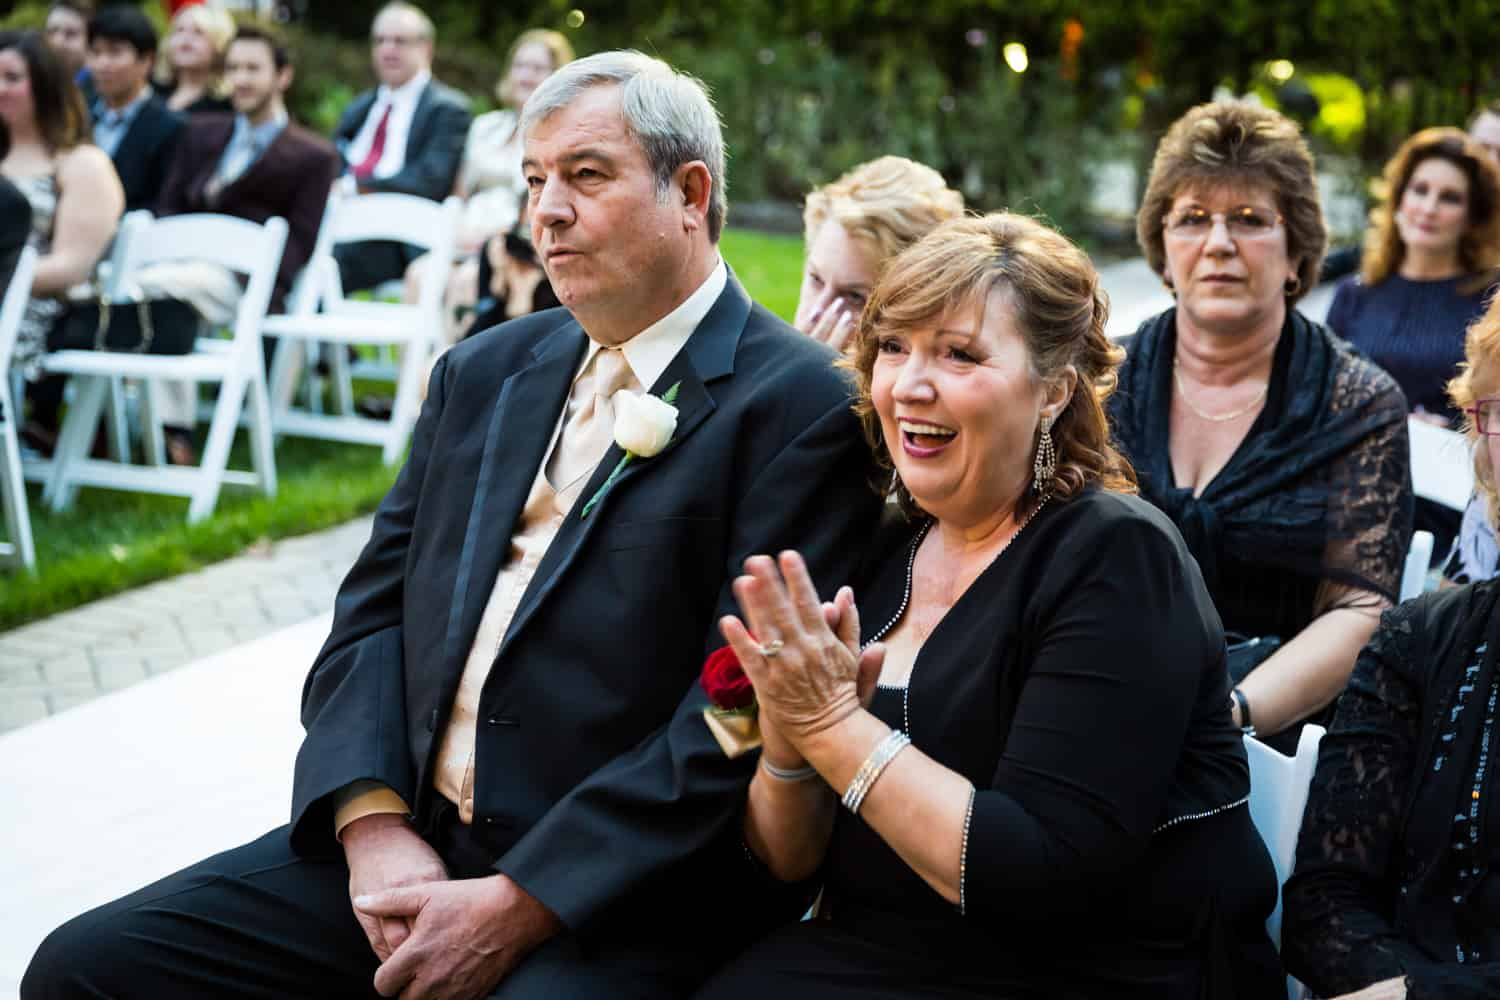 Parents of the bride listening to wedding ceremony